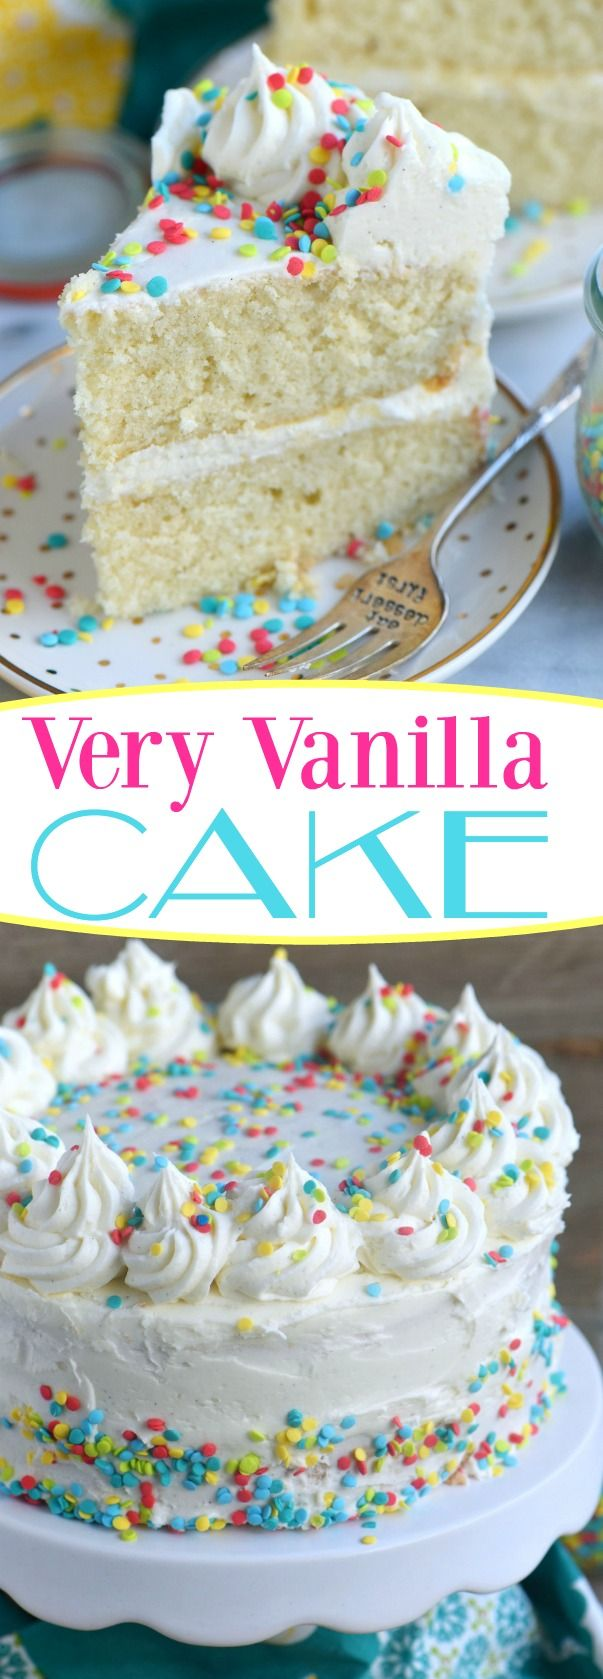 Soft and Spongy Very Vanilla Cake Recipe